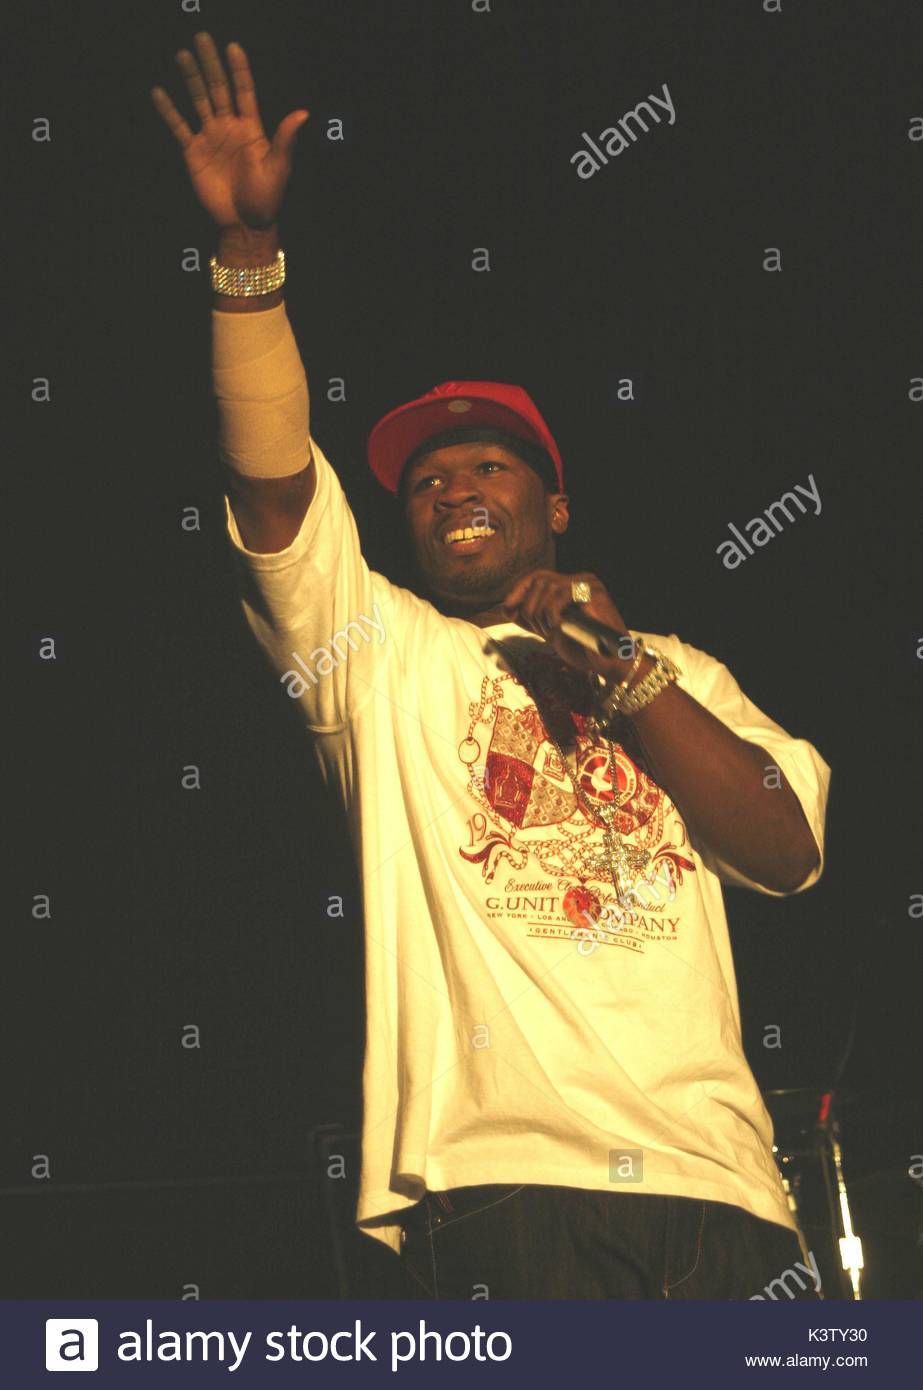 50 Cent Real Name Curtis Jackson Brings His Tour To The Manchester Arena Performing Tracks From His New Al Curtis 50 Cent Is Back In Town As Part Of